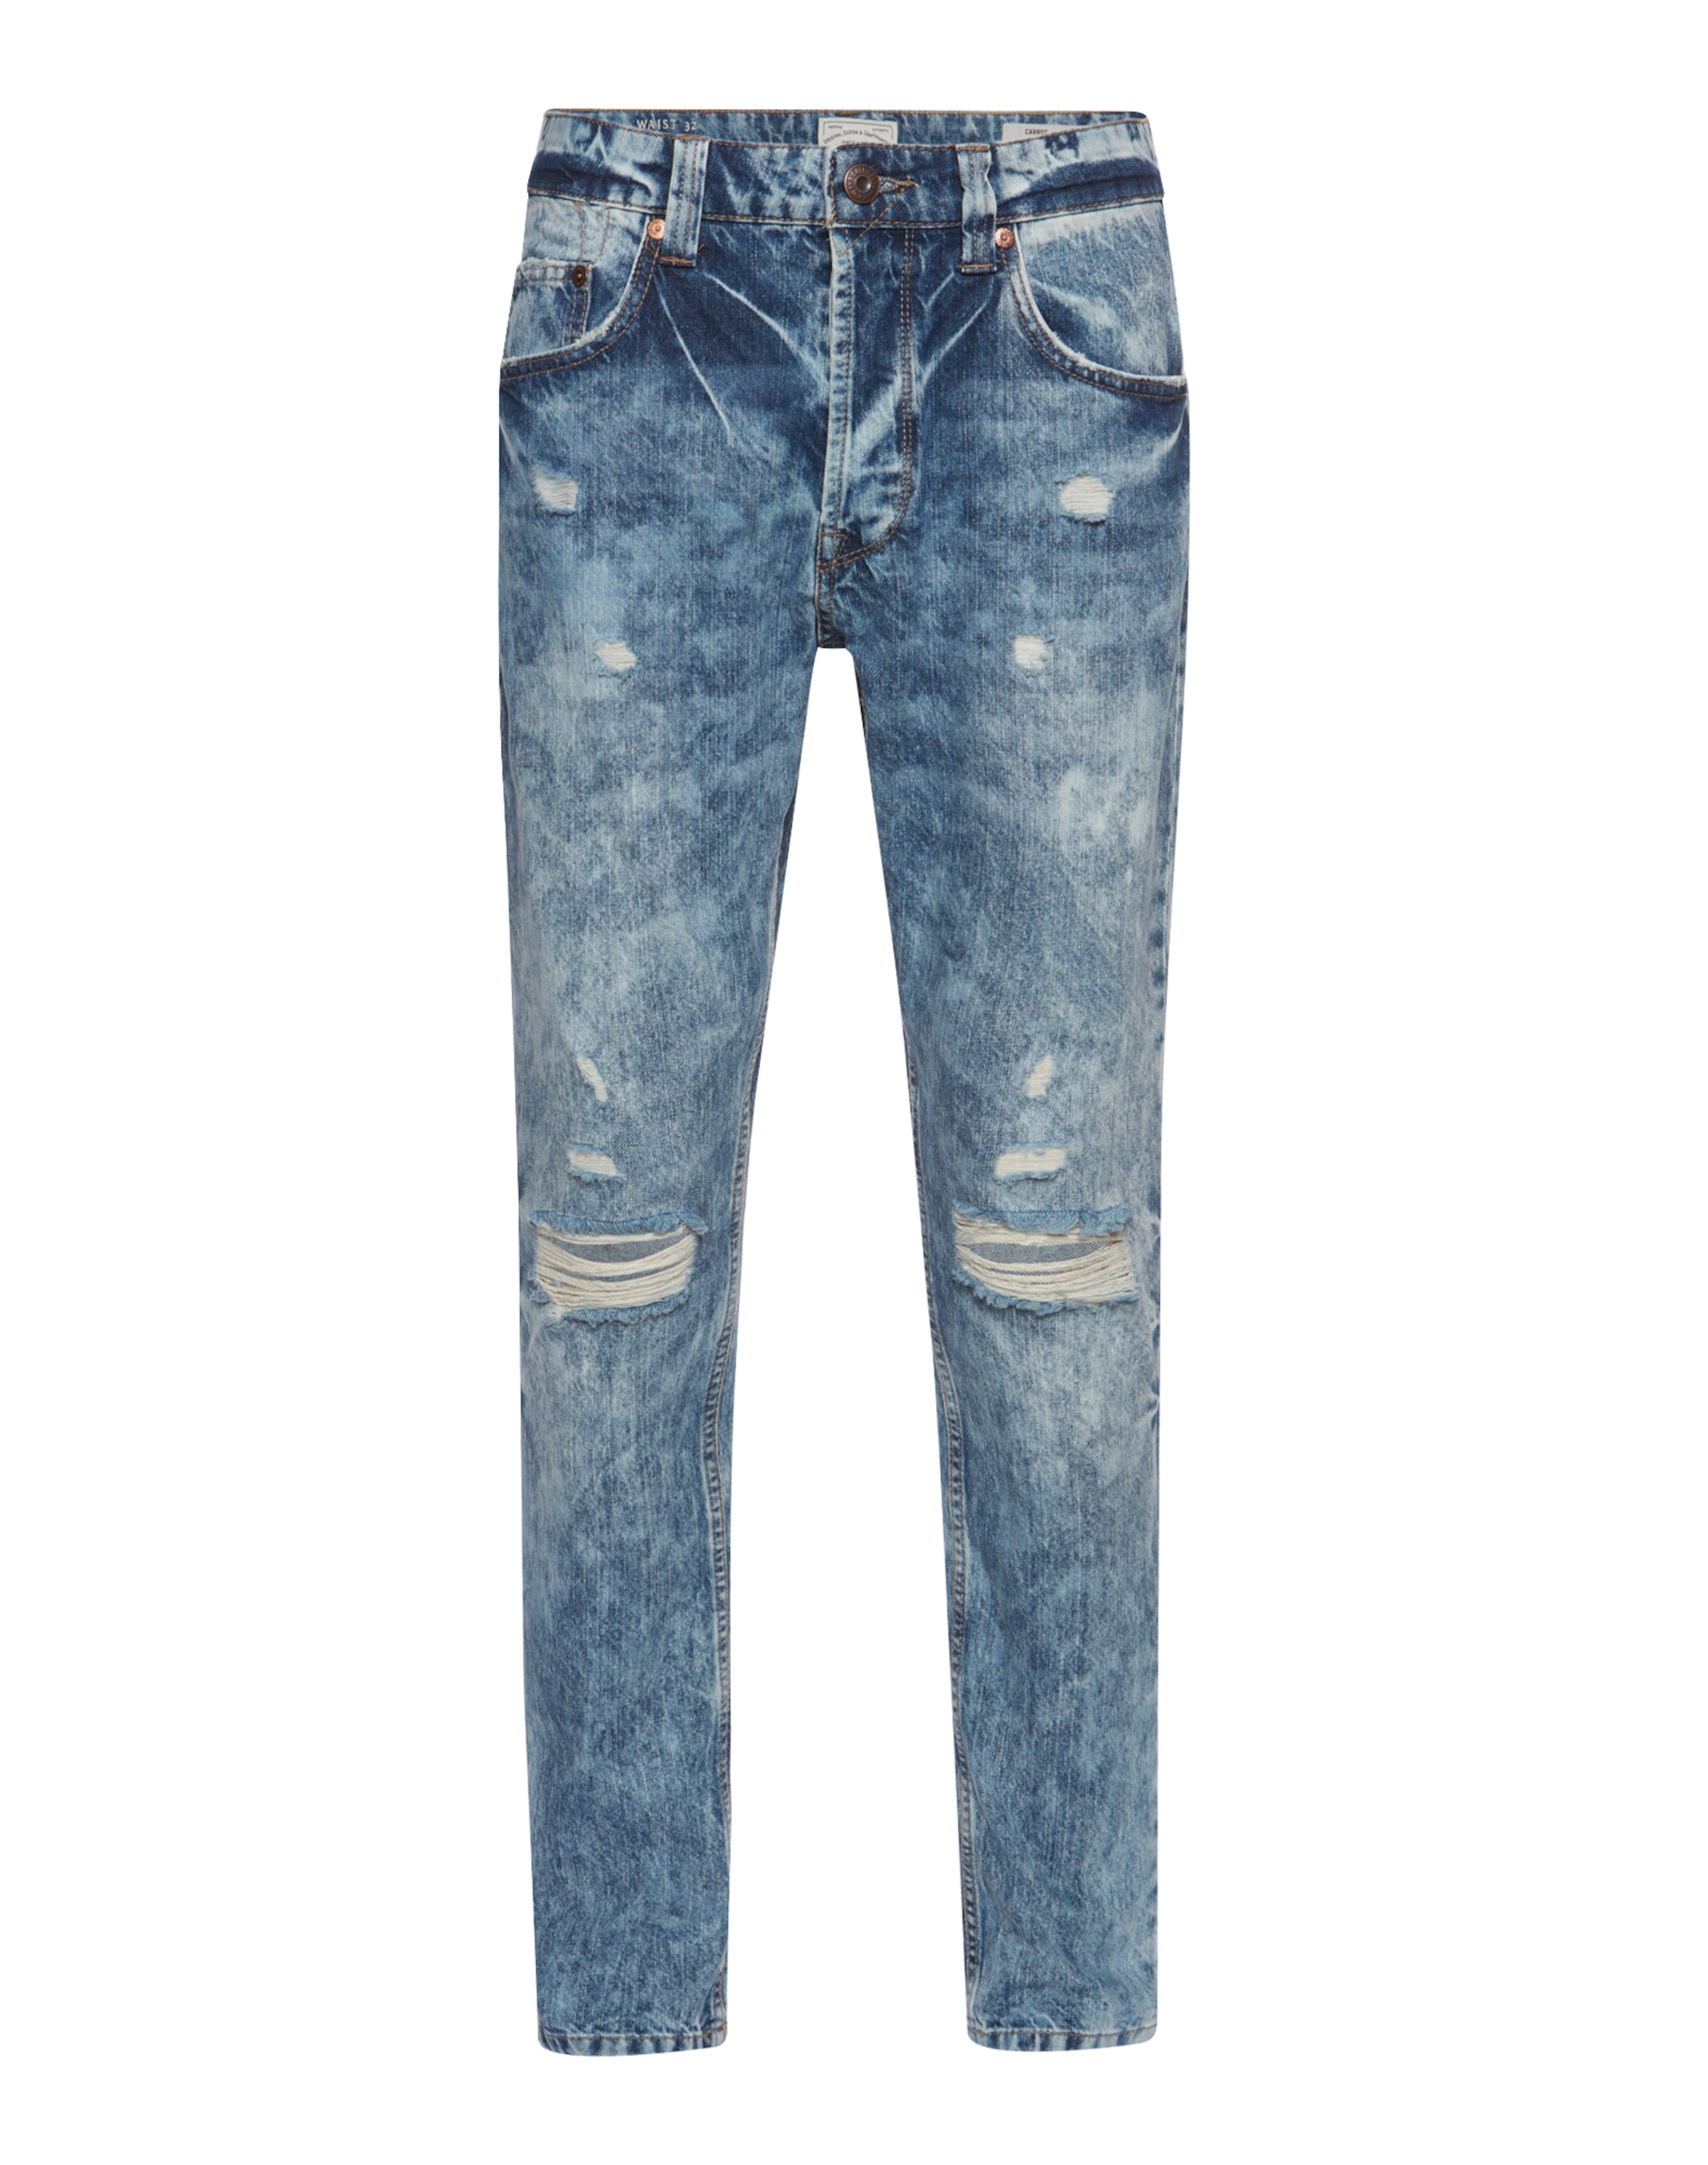 Only & Sons Slim Fit Jeans 'Carrot blue destroyed' Neueste w7whkm